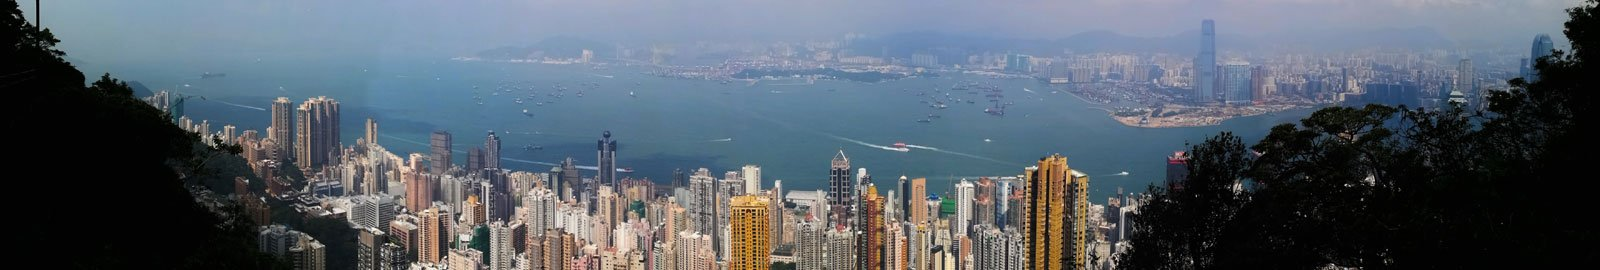 Hong Kong Island at Day with View towards Tsing Yi